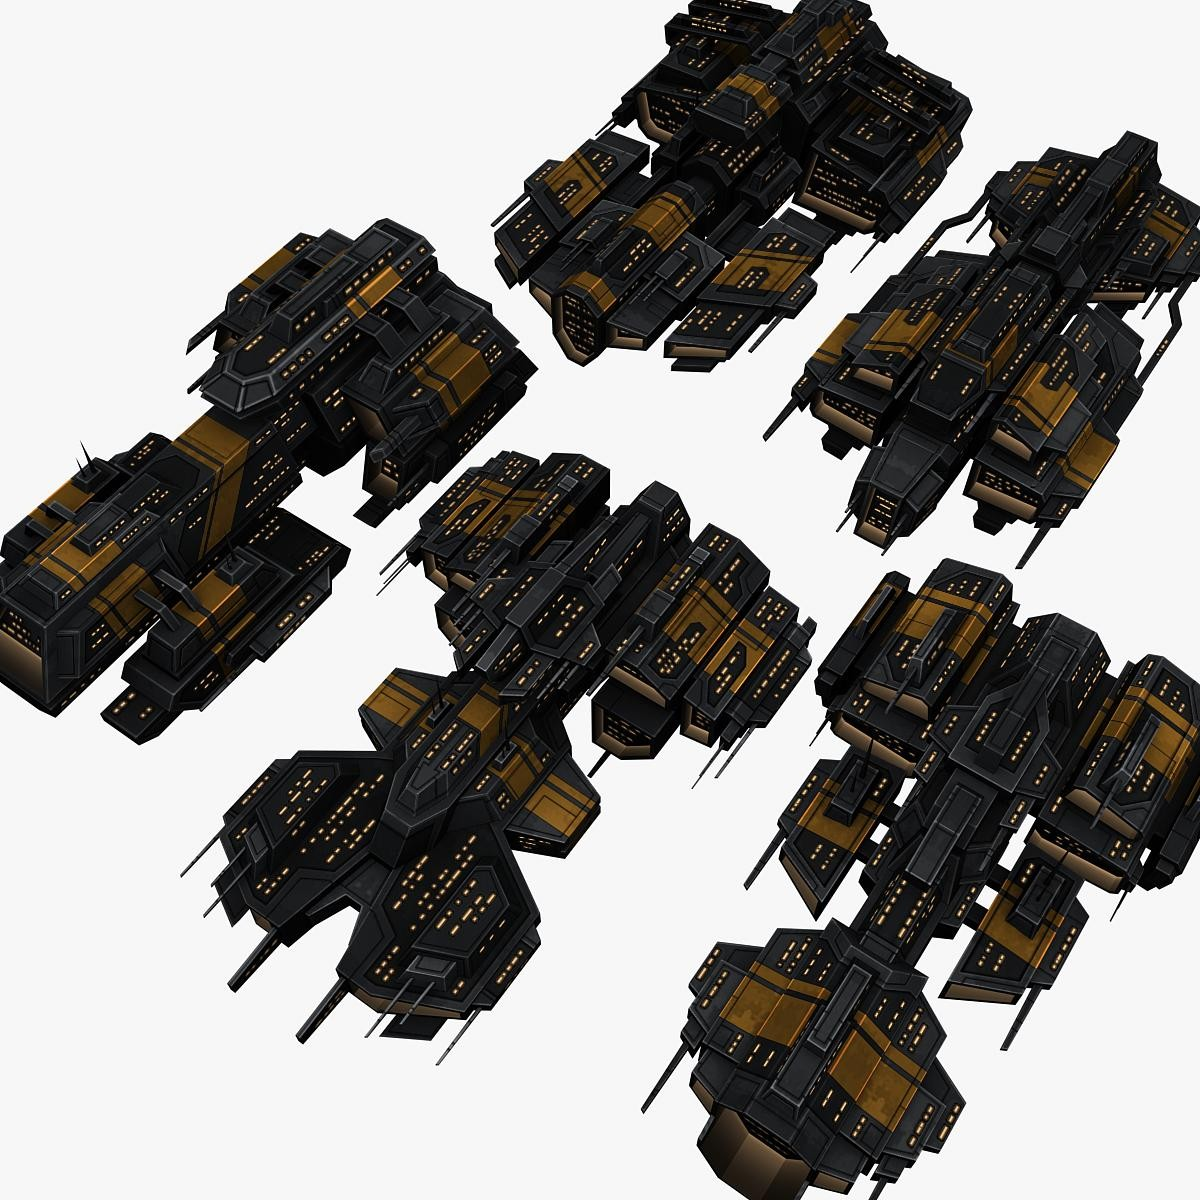 5_space_battleships_upgraded_preview_0.jpg